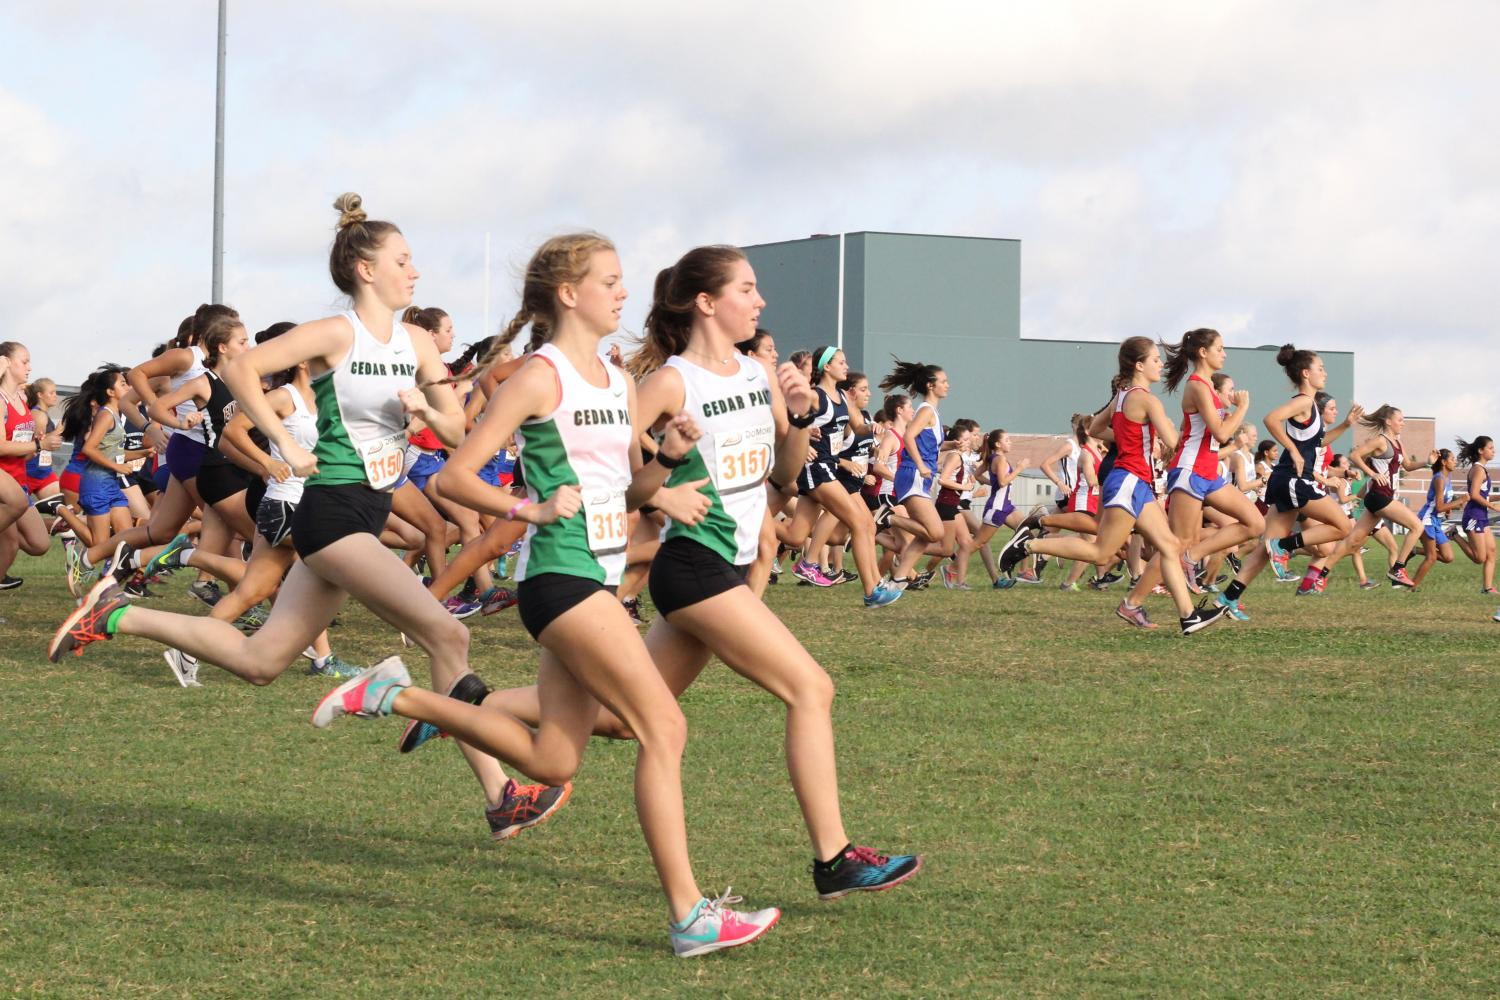 The JV girls, including Kyla Woods and Erika Arthur, take off to start their meet on Sept. 16 at the Cedar Park Invitational.